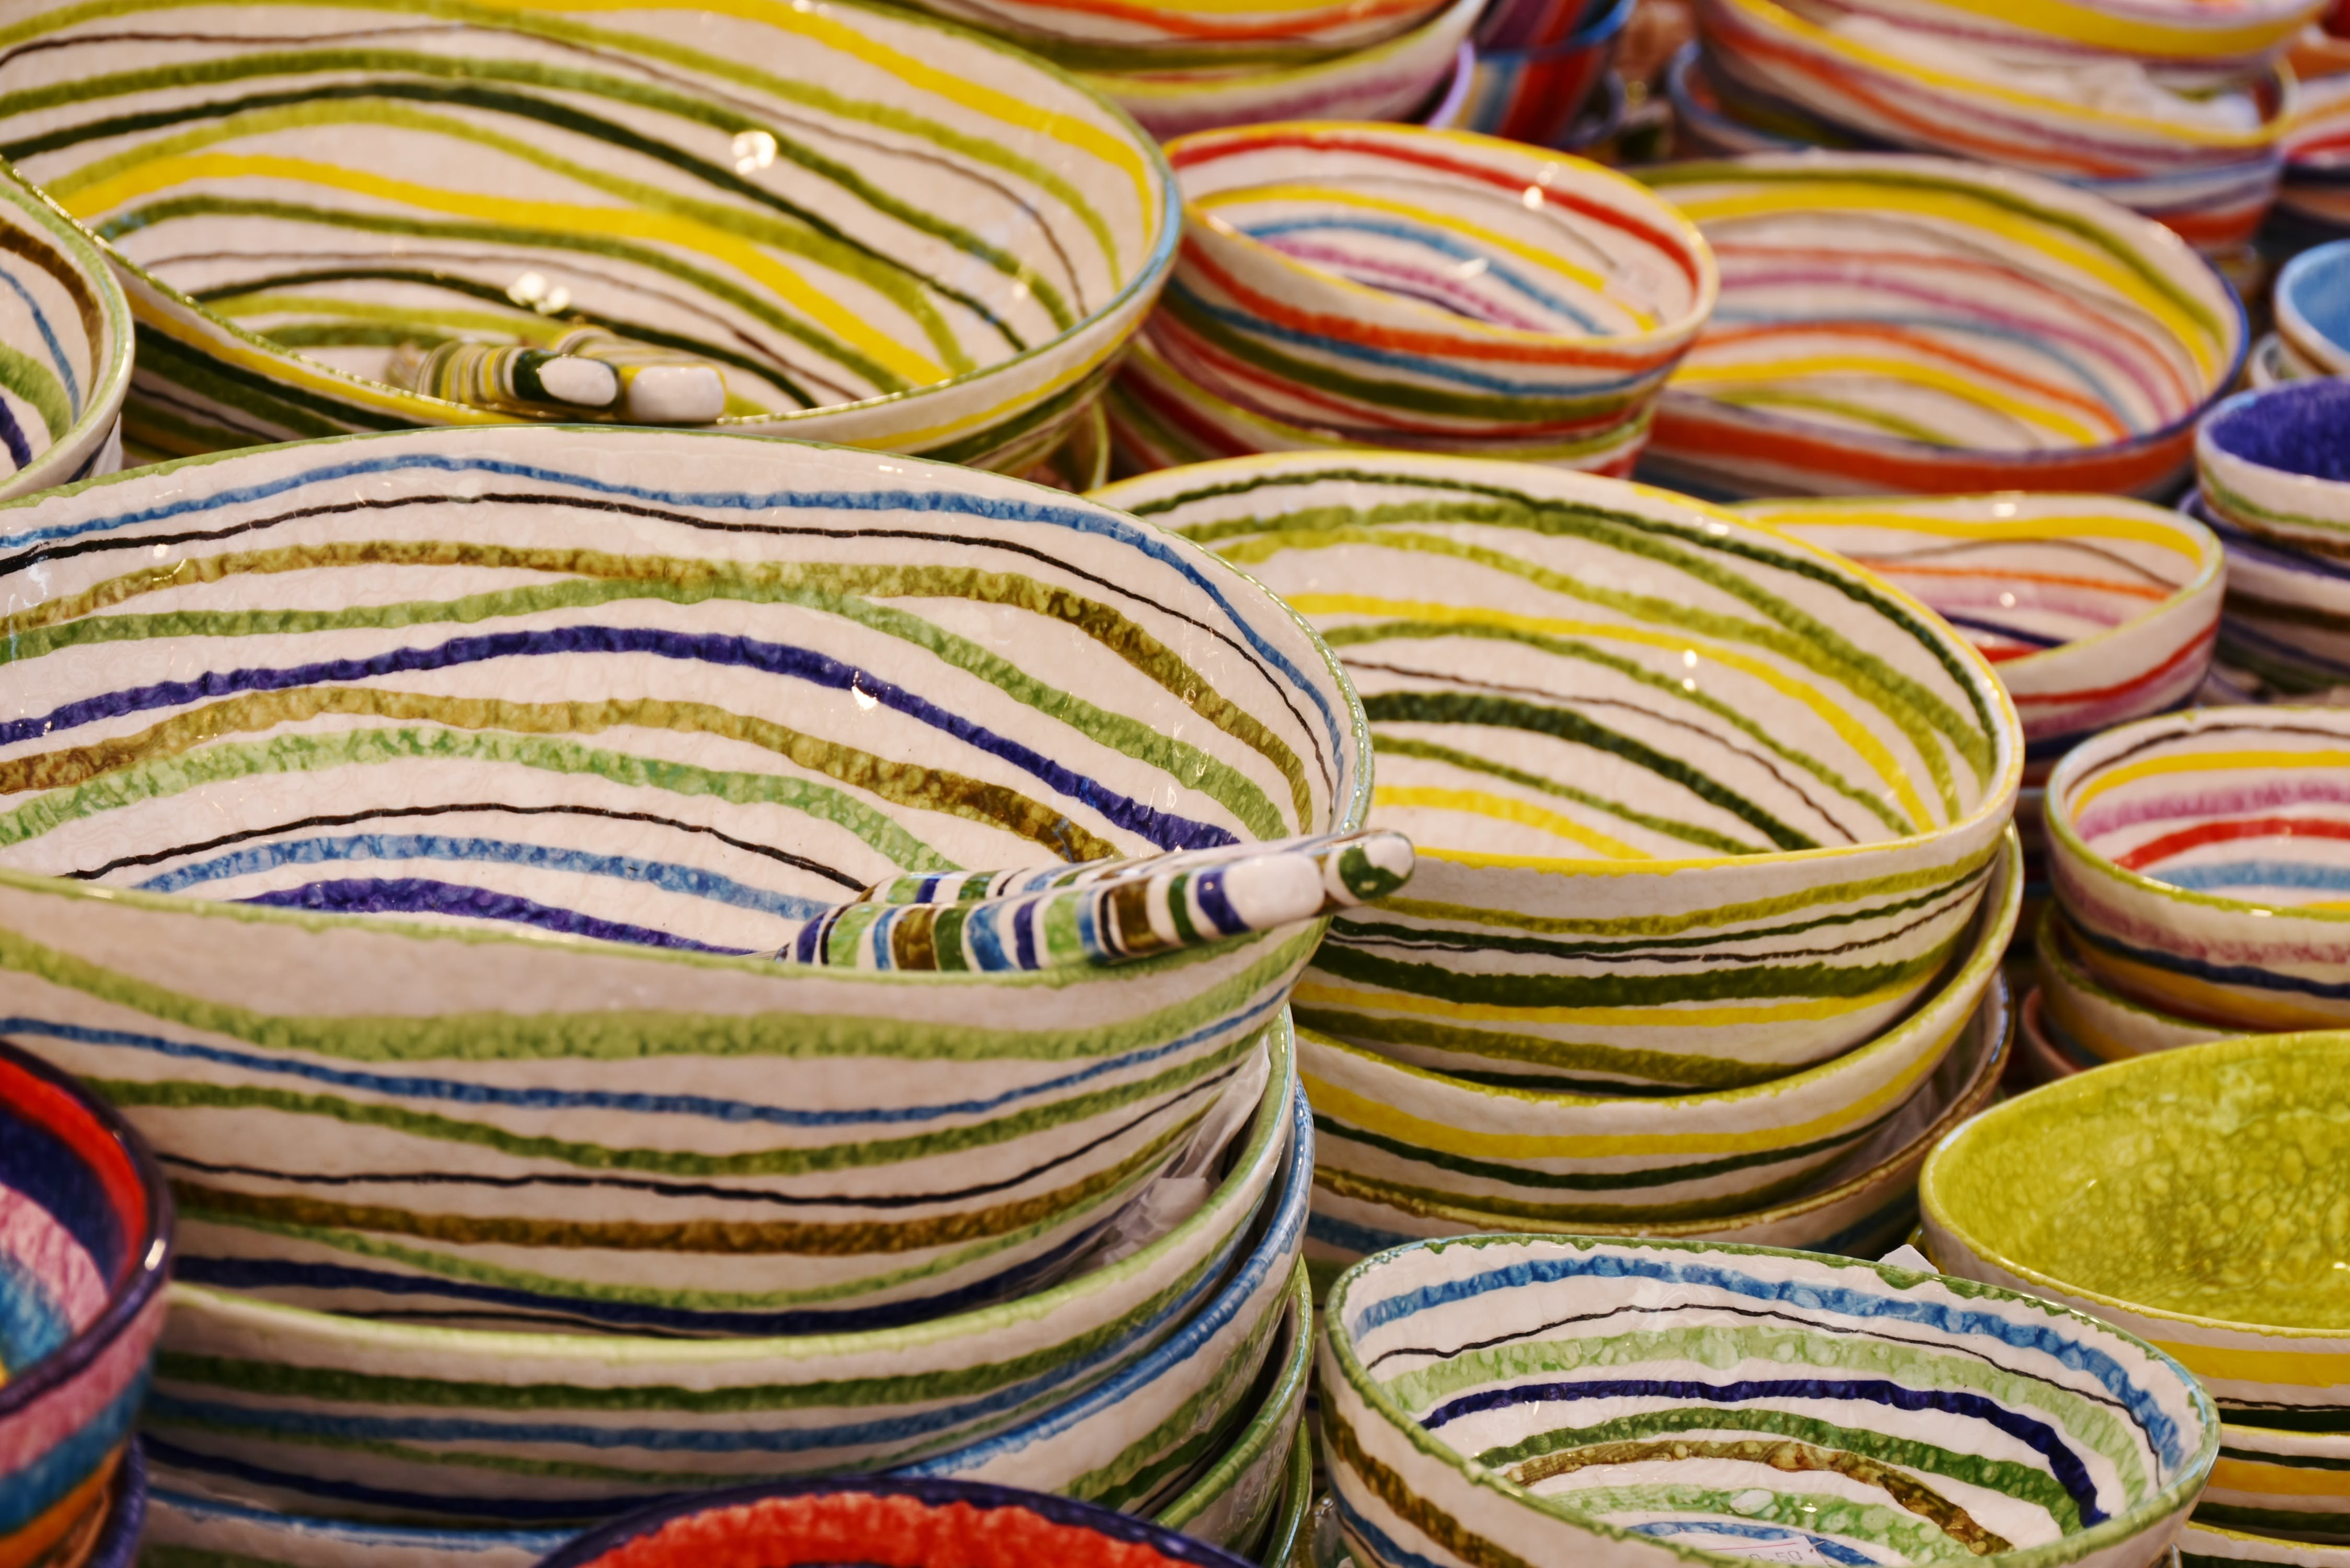 Free stock photo of plate, stack, colorful, shopping